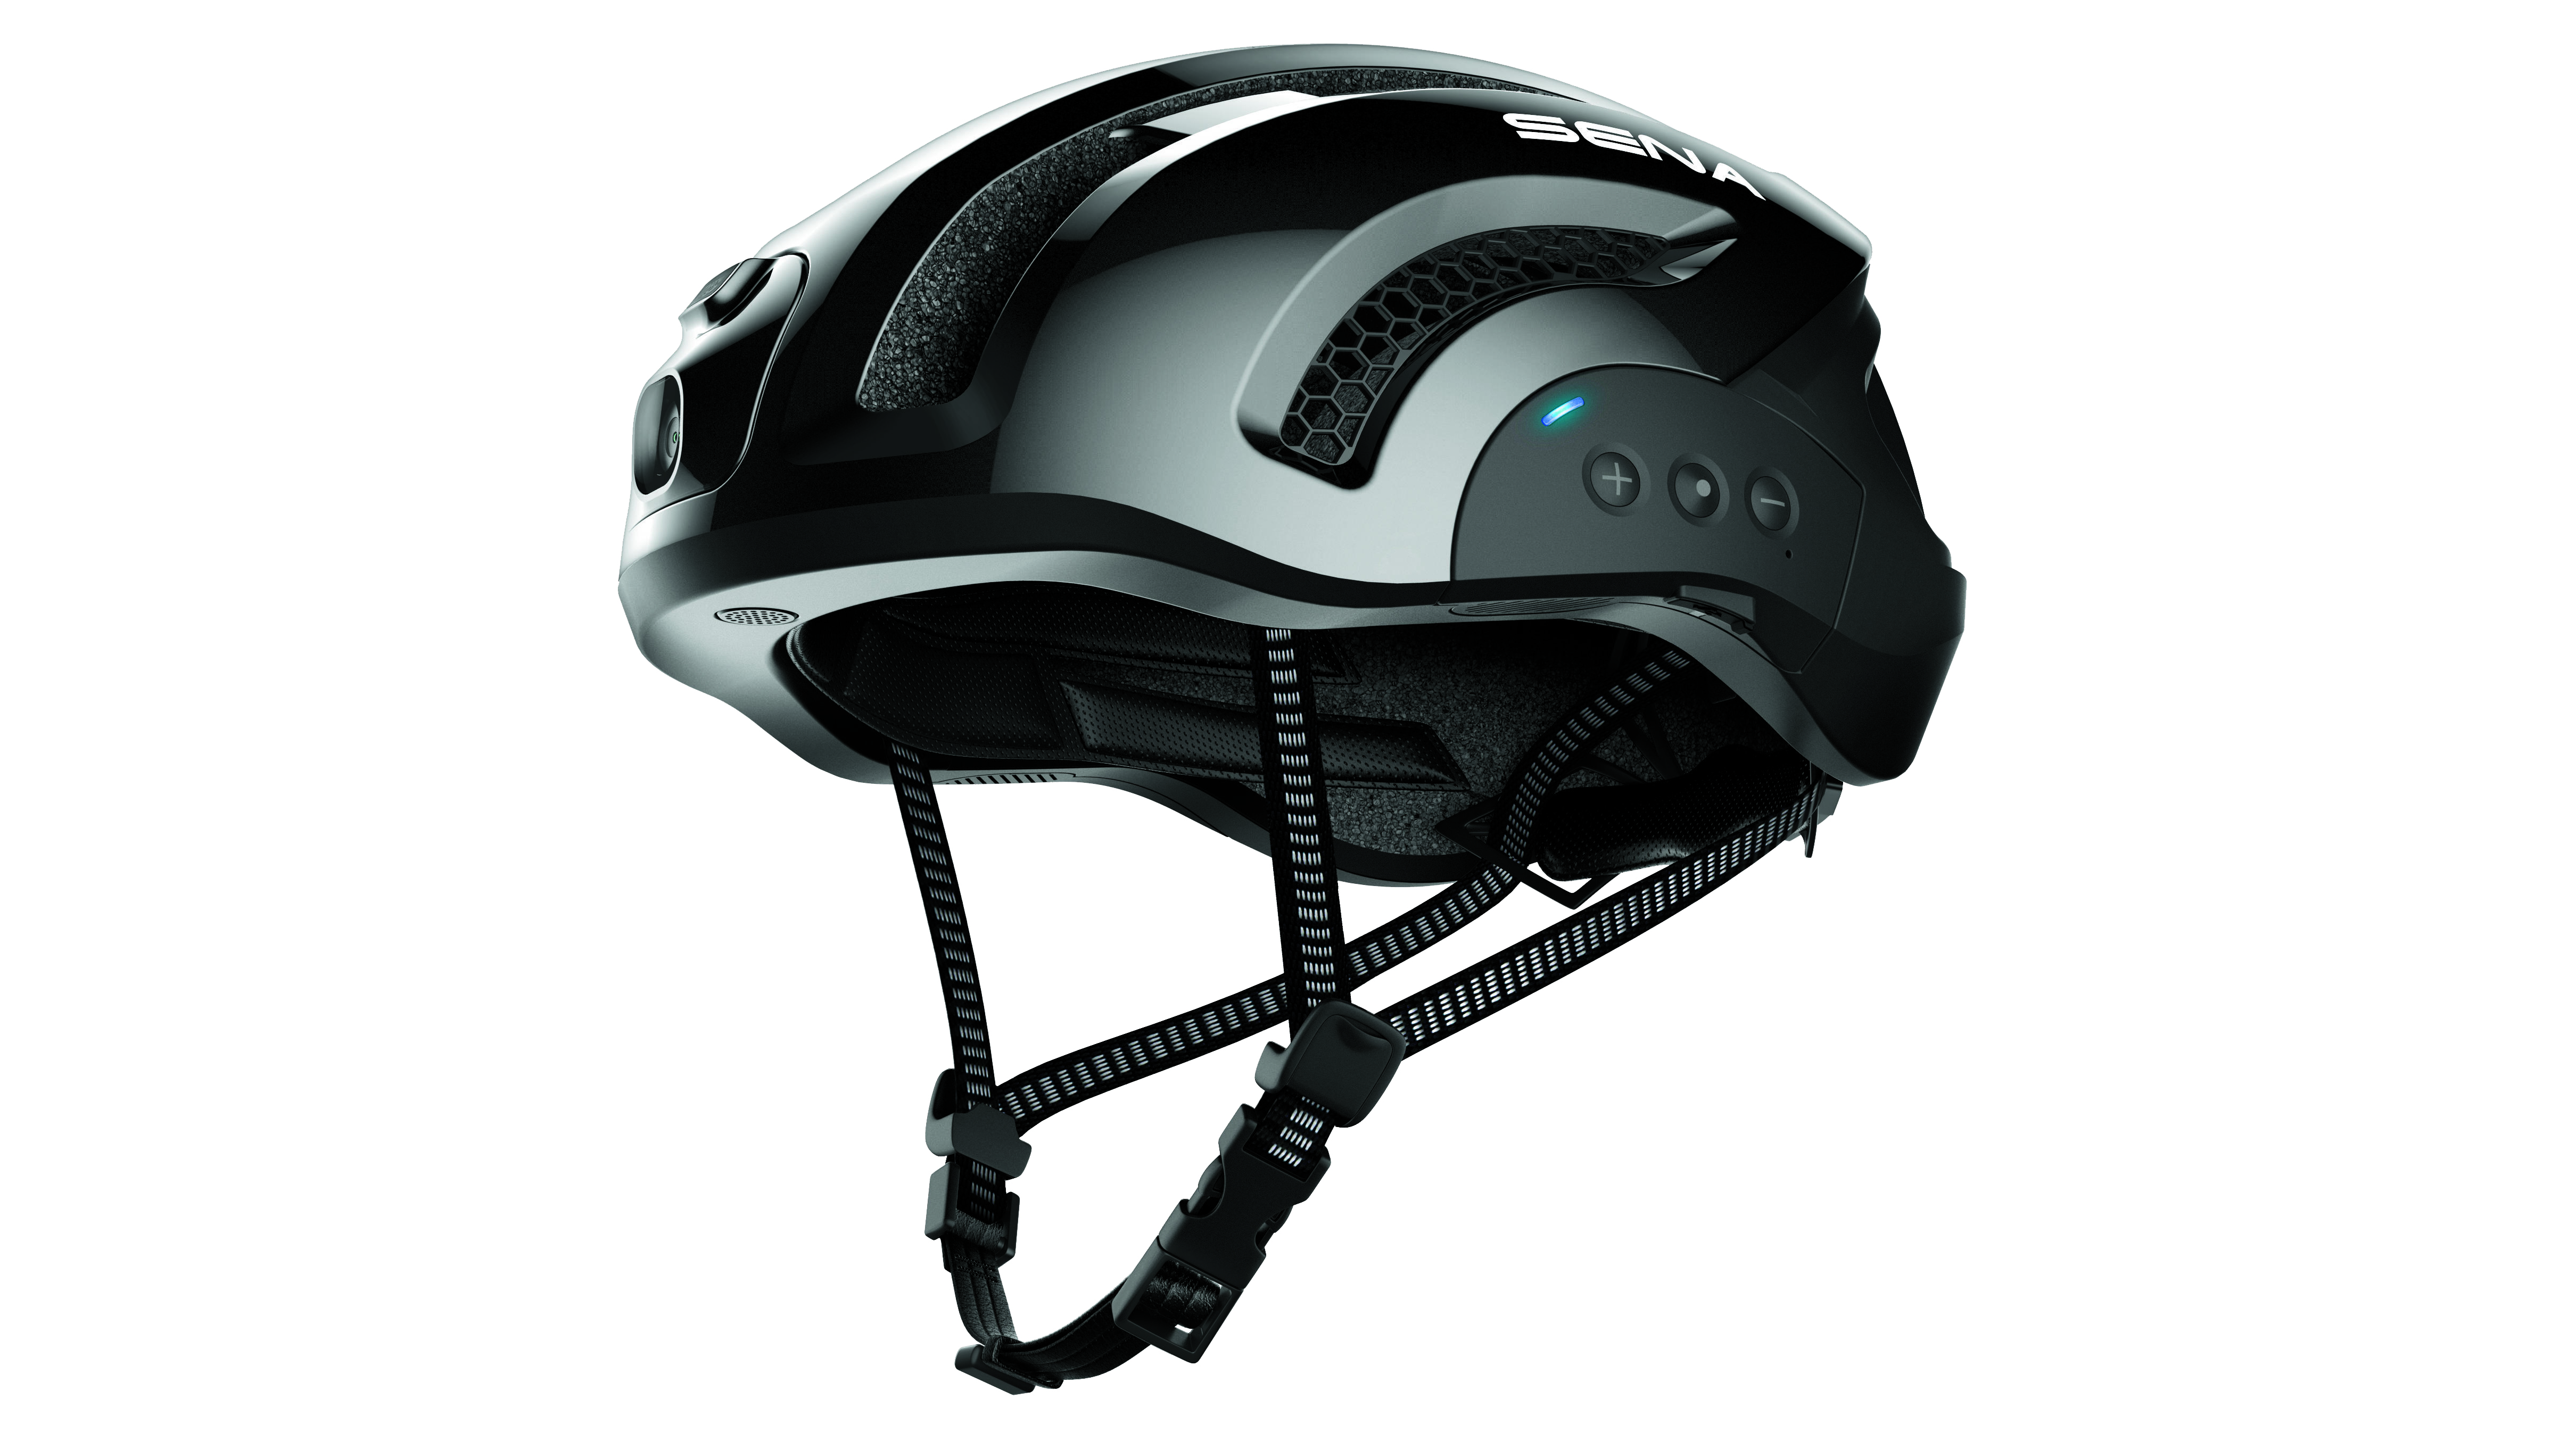 This Smart Cycling Helmet Will Elevate Your Ride